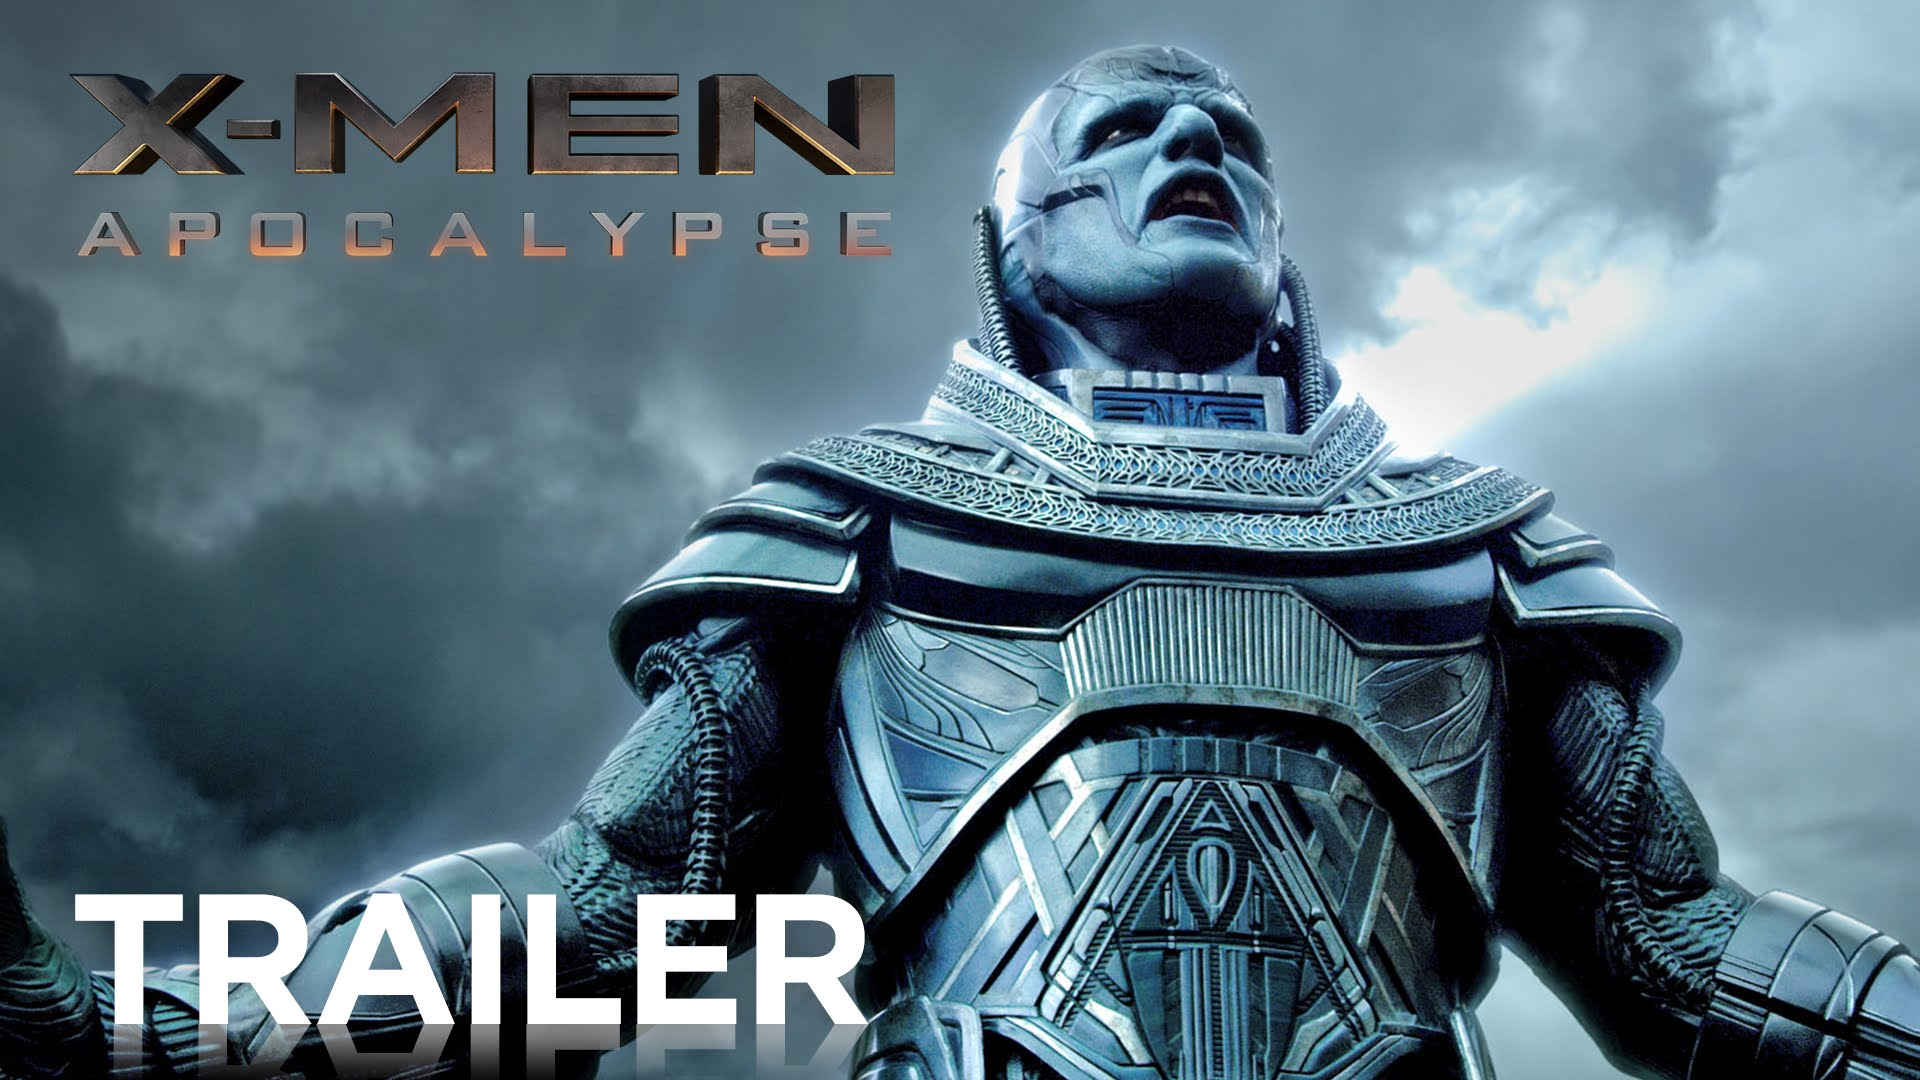 Photo of X-Men Apocalypse Trailer